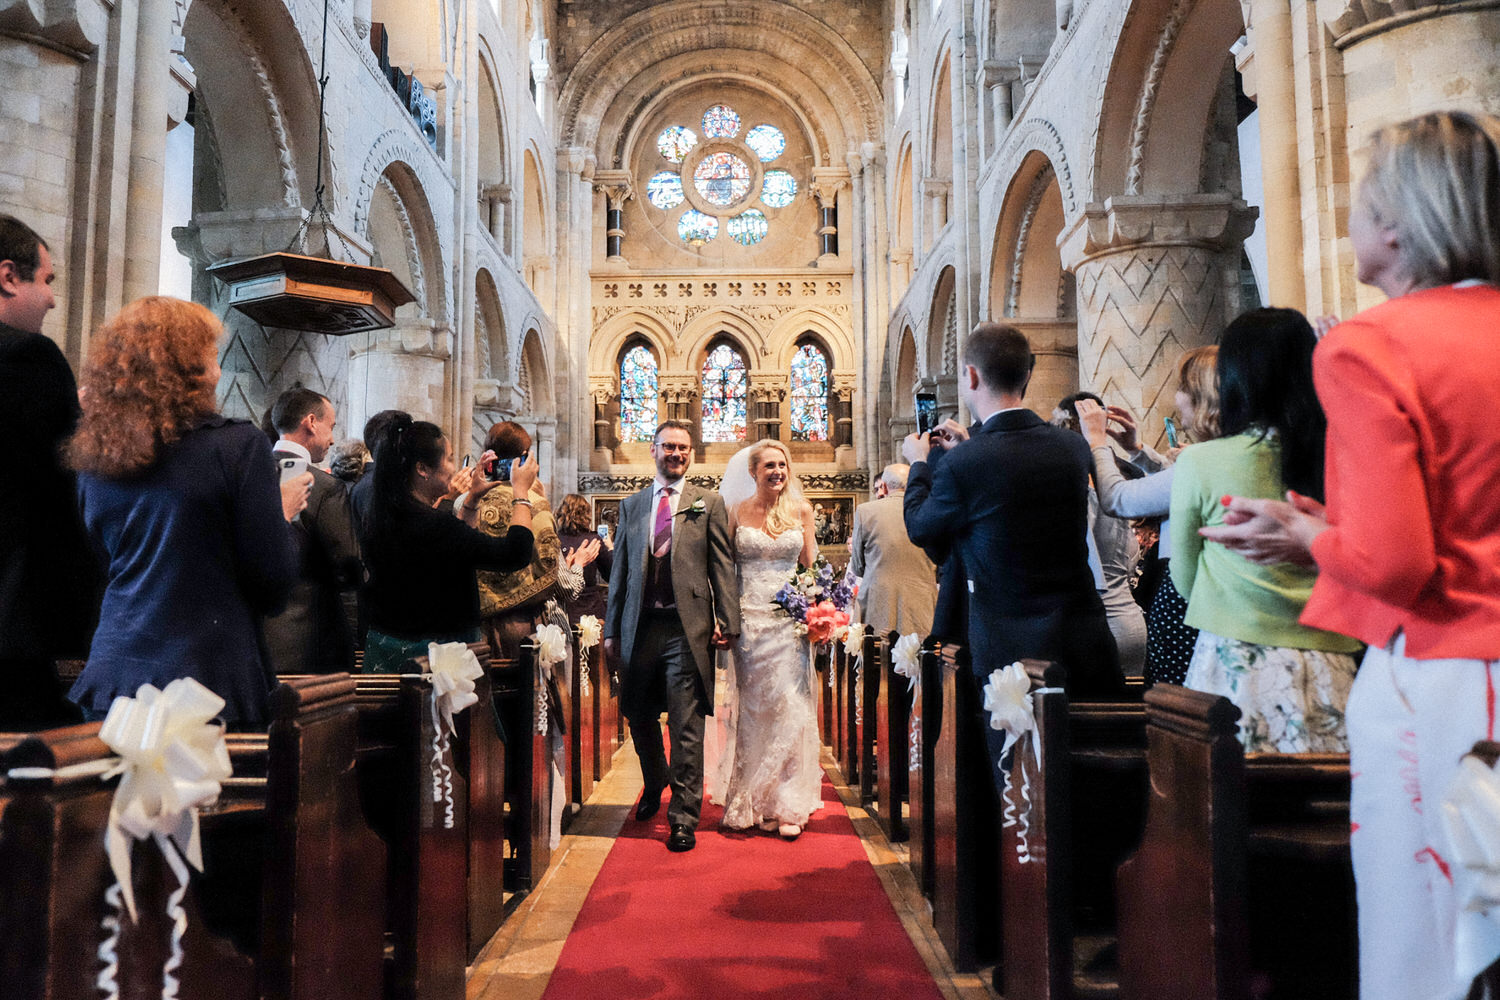 bride-groom-just-married-waltham-abbey